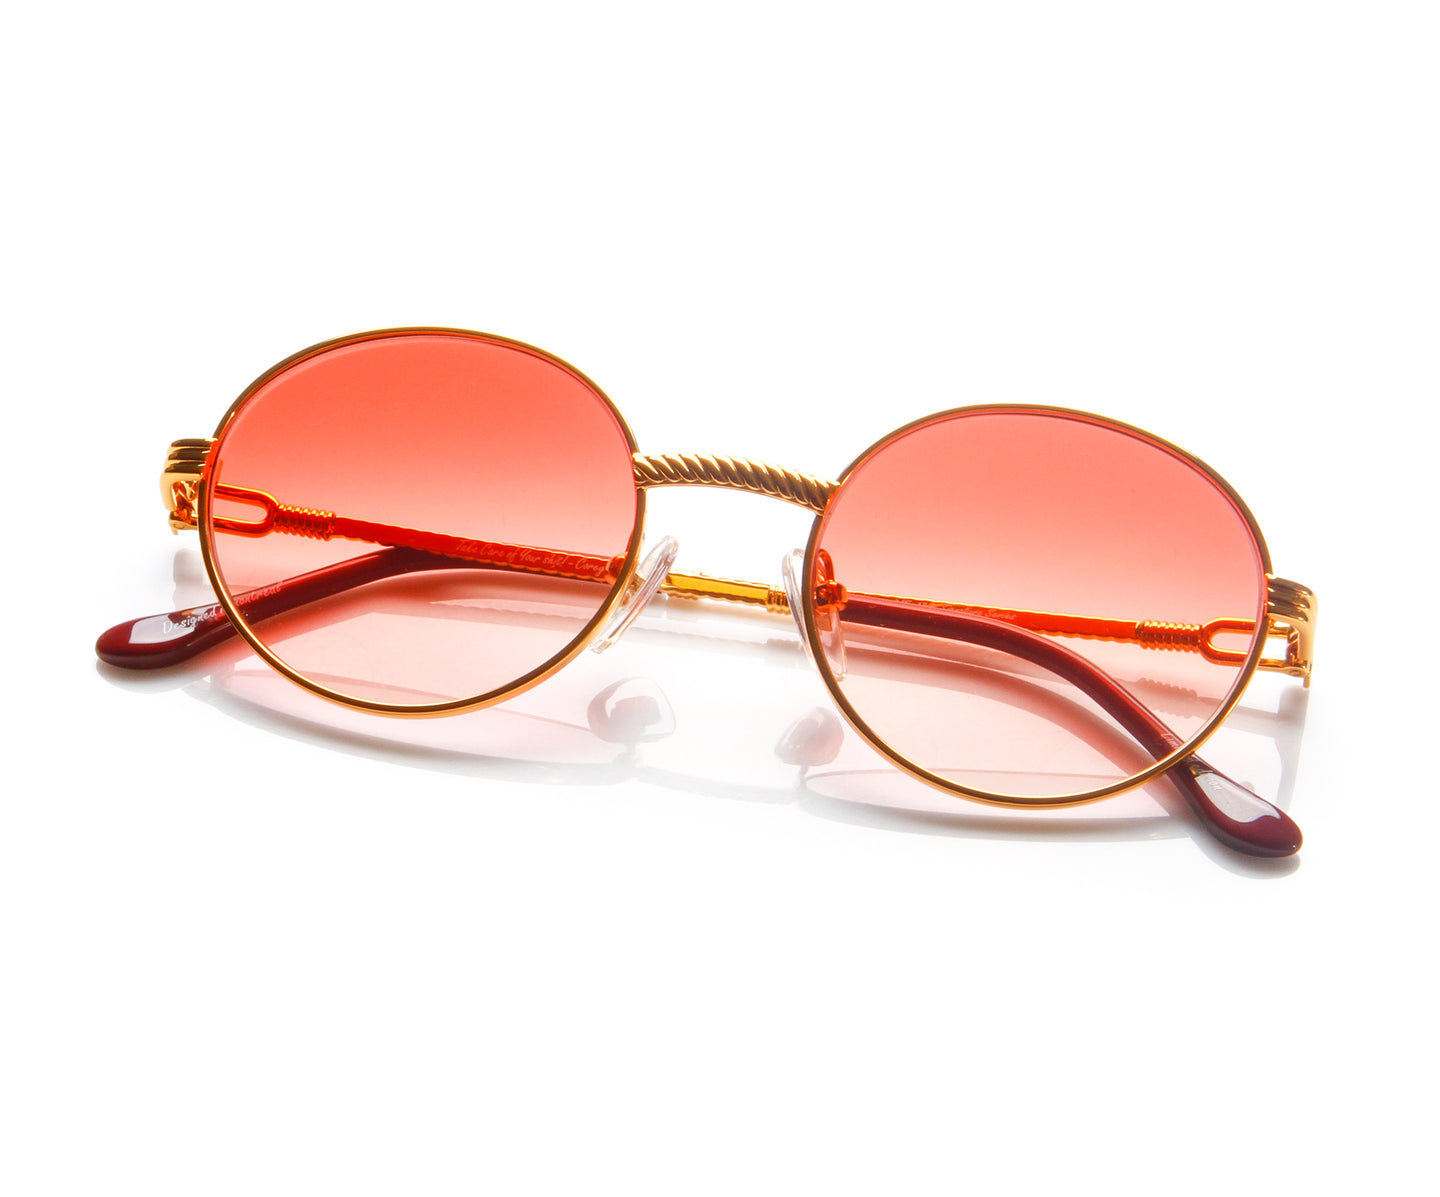 VF 508 18KT Gold Signature Edition (Red Gradient) Thumb, VF by Vintage Frames , glasses frames, eyeglasses online, eyeglass frames, mens glasses, womens glasses, buy glasses online, designer eyeglasses, vintage sunglasses, retro sunglasses, vintage glasses, sunglass, eyeglass, glasses, lens, vintage frames company, vf